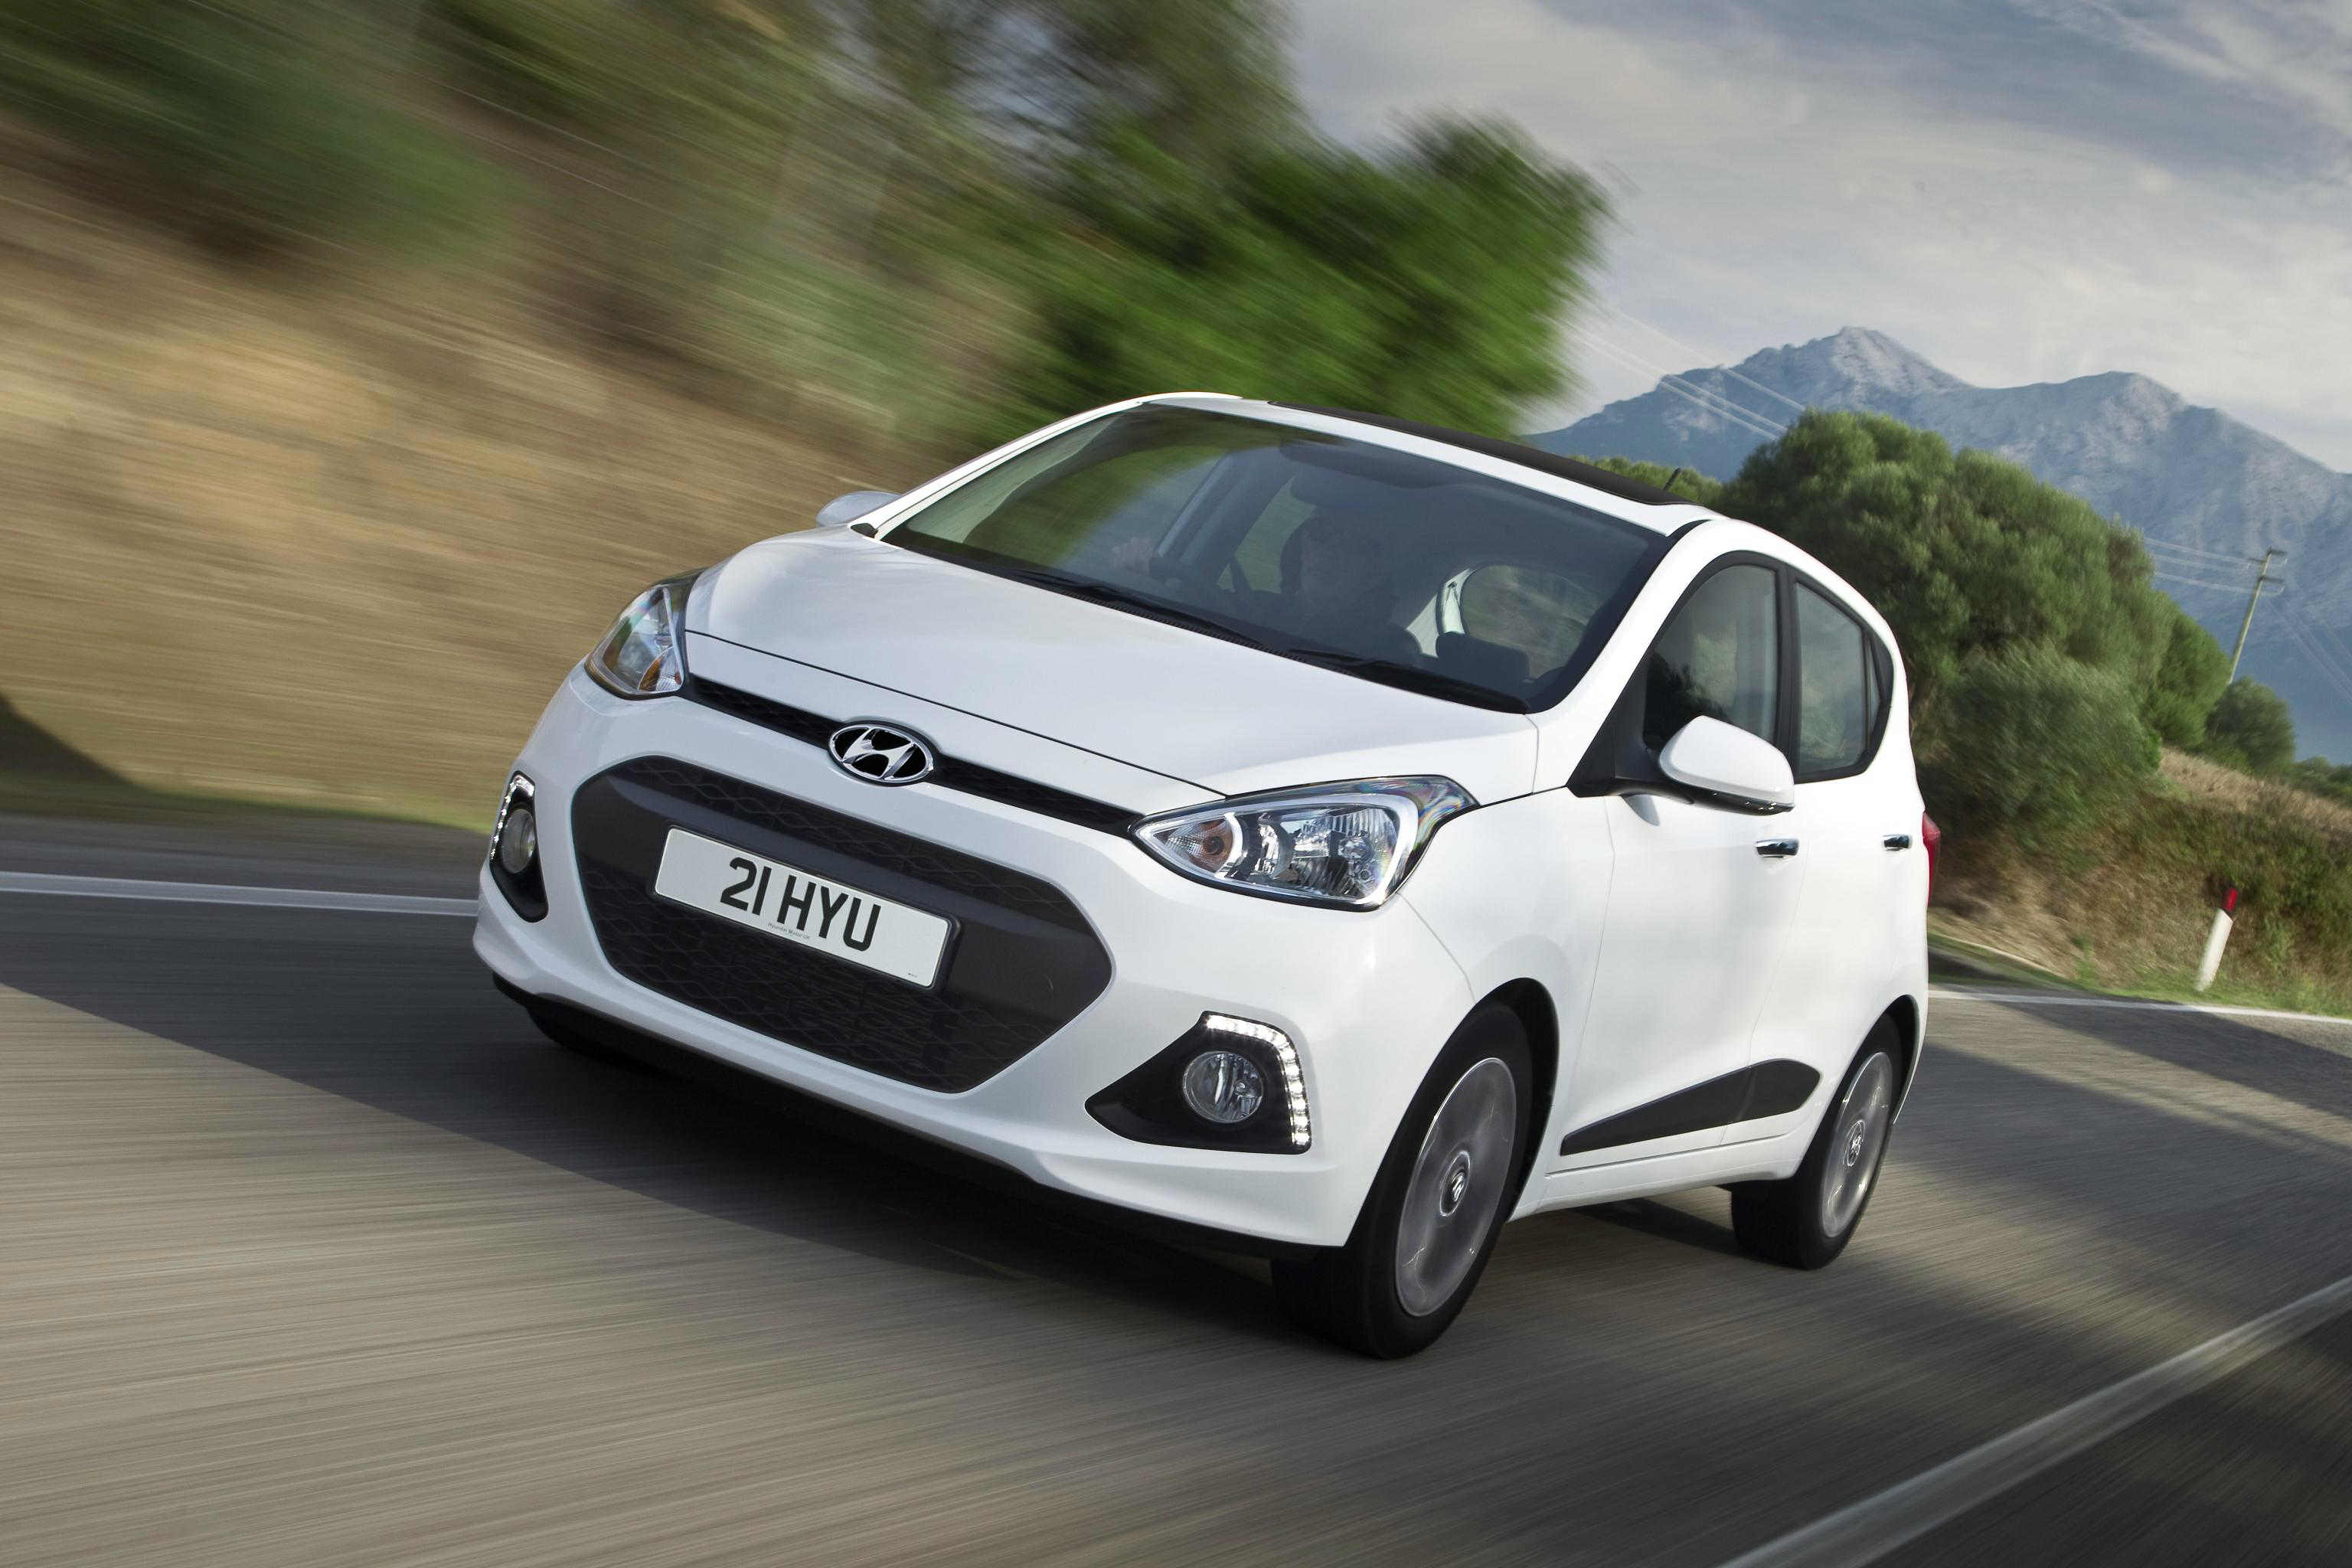 image of a white hyundai i10 car exterior